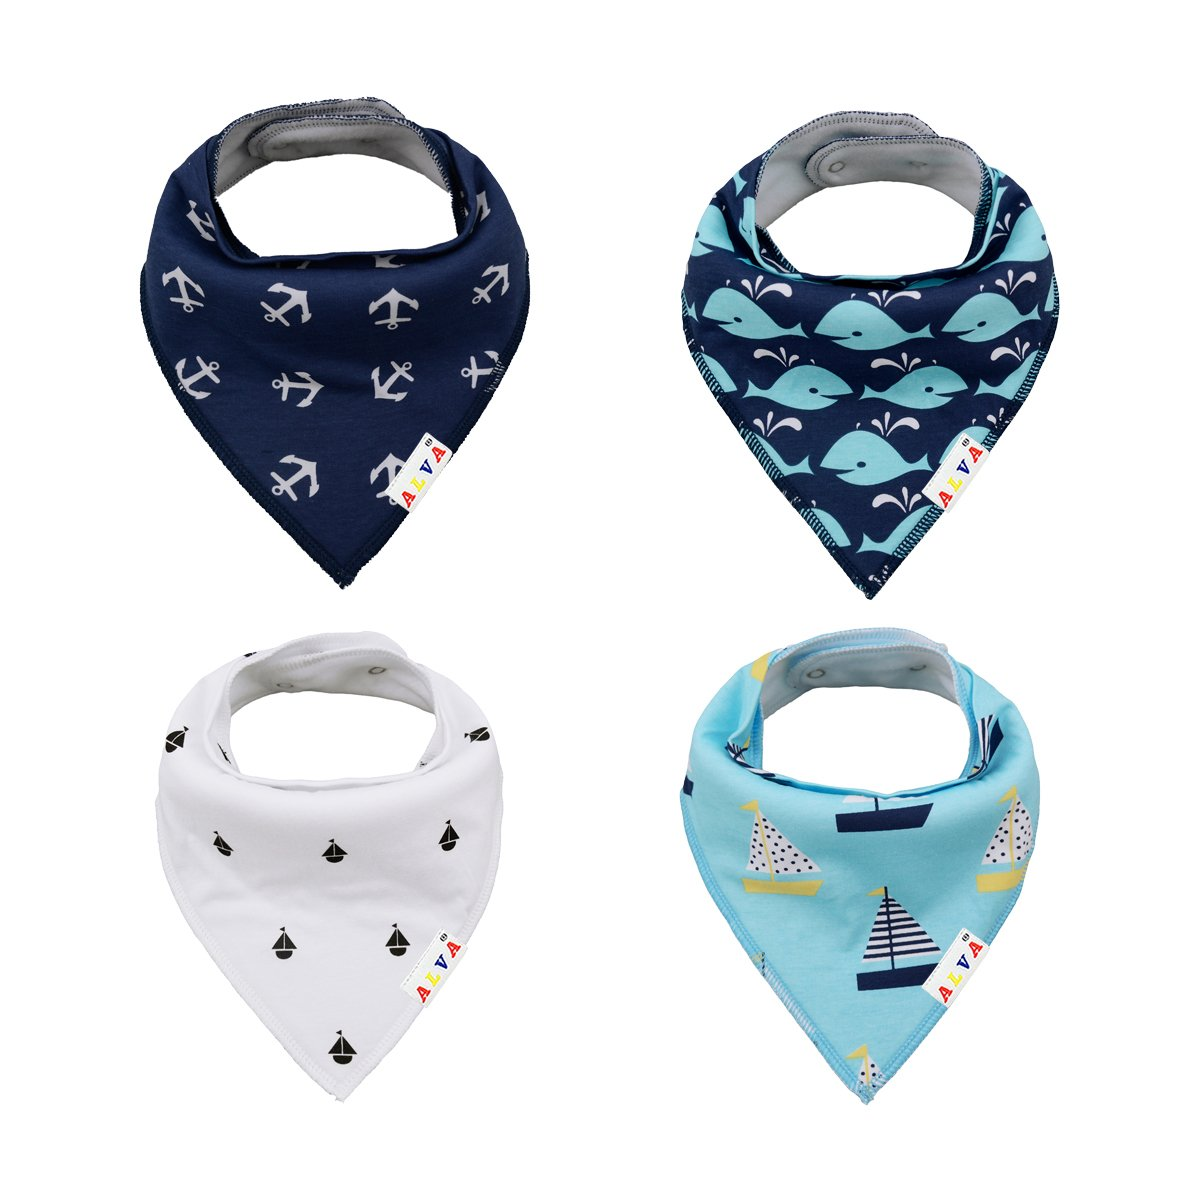 ALVABABY Bandana Bibs Resuable Adjustable for Boys Super Absorbent Baby Gift Settings 8 PCS Pack 8SD06-CA